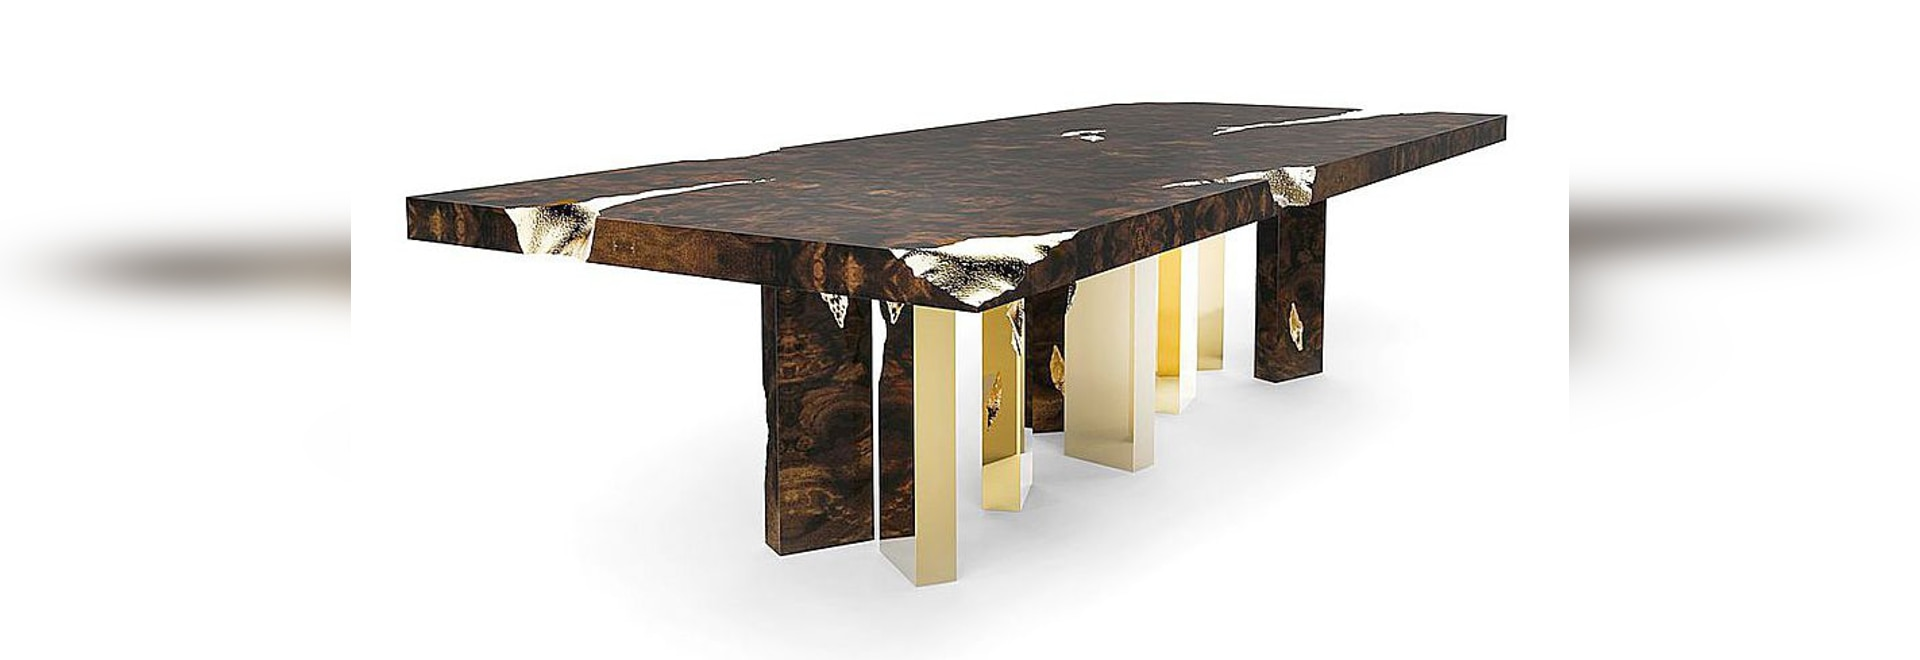 New product: The Empire Dining Table